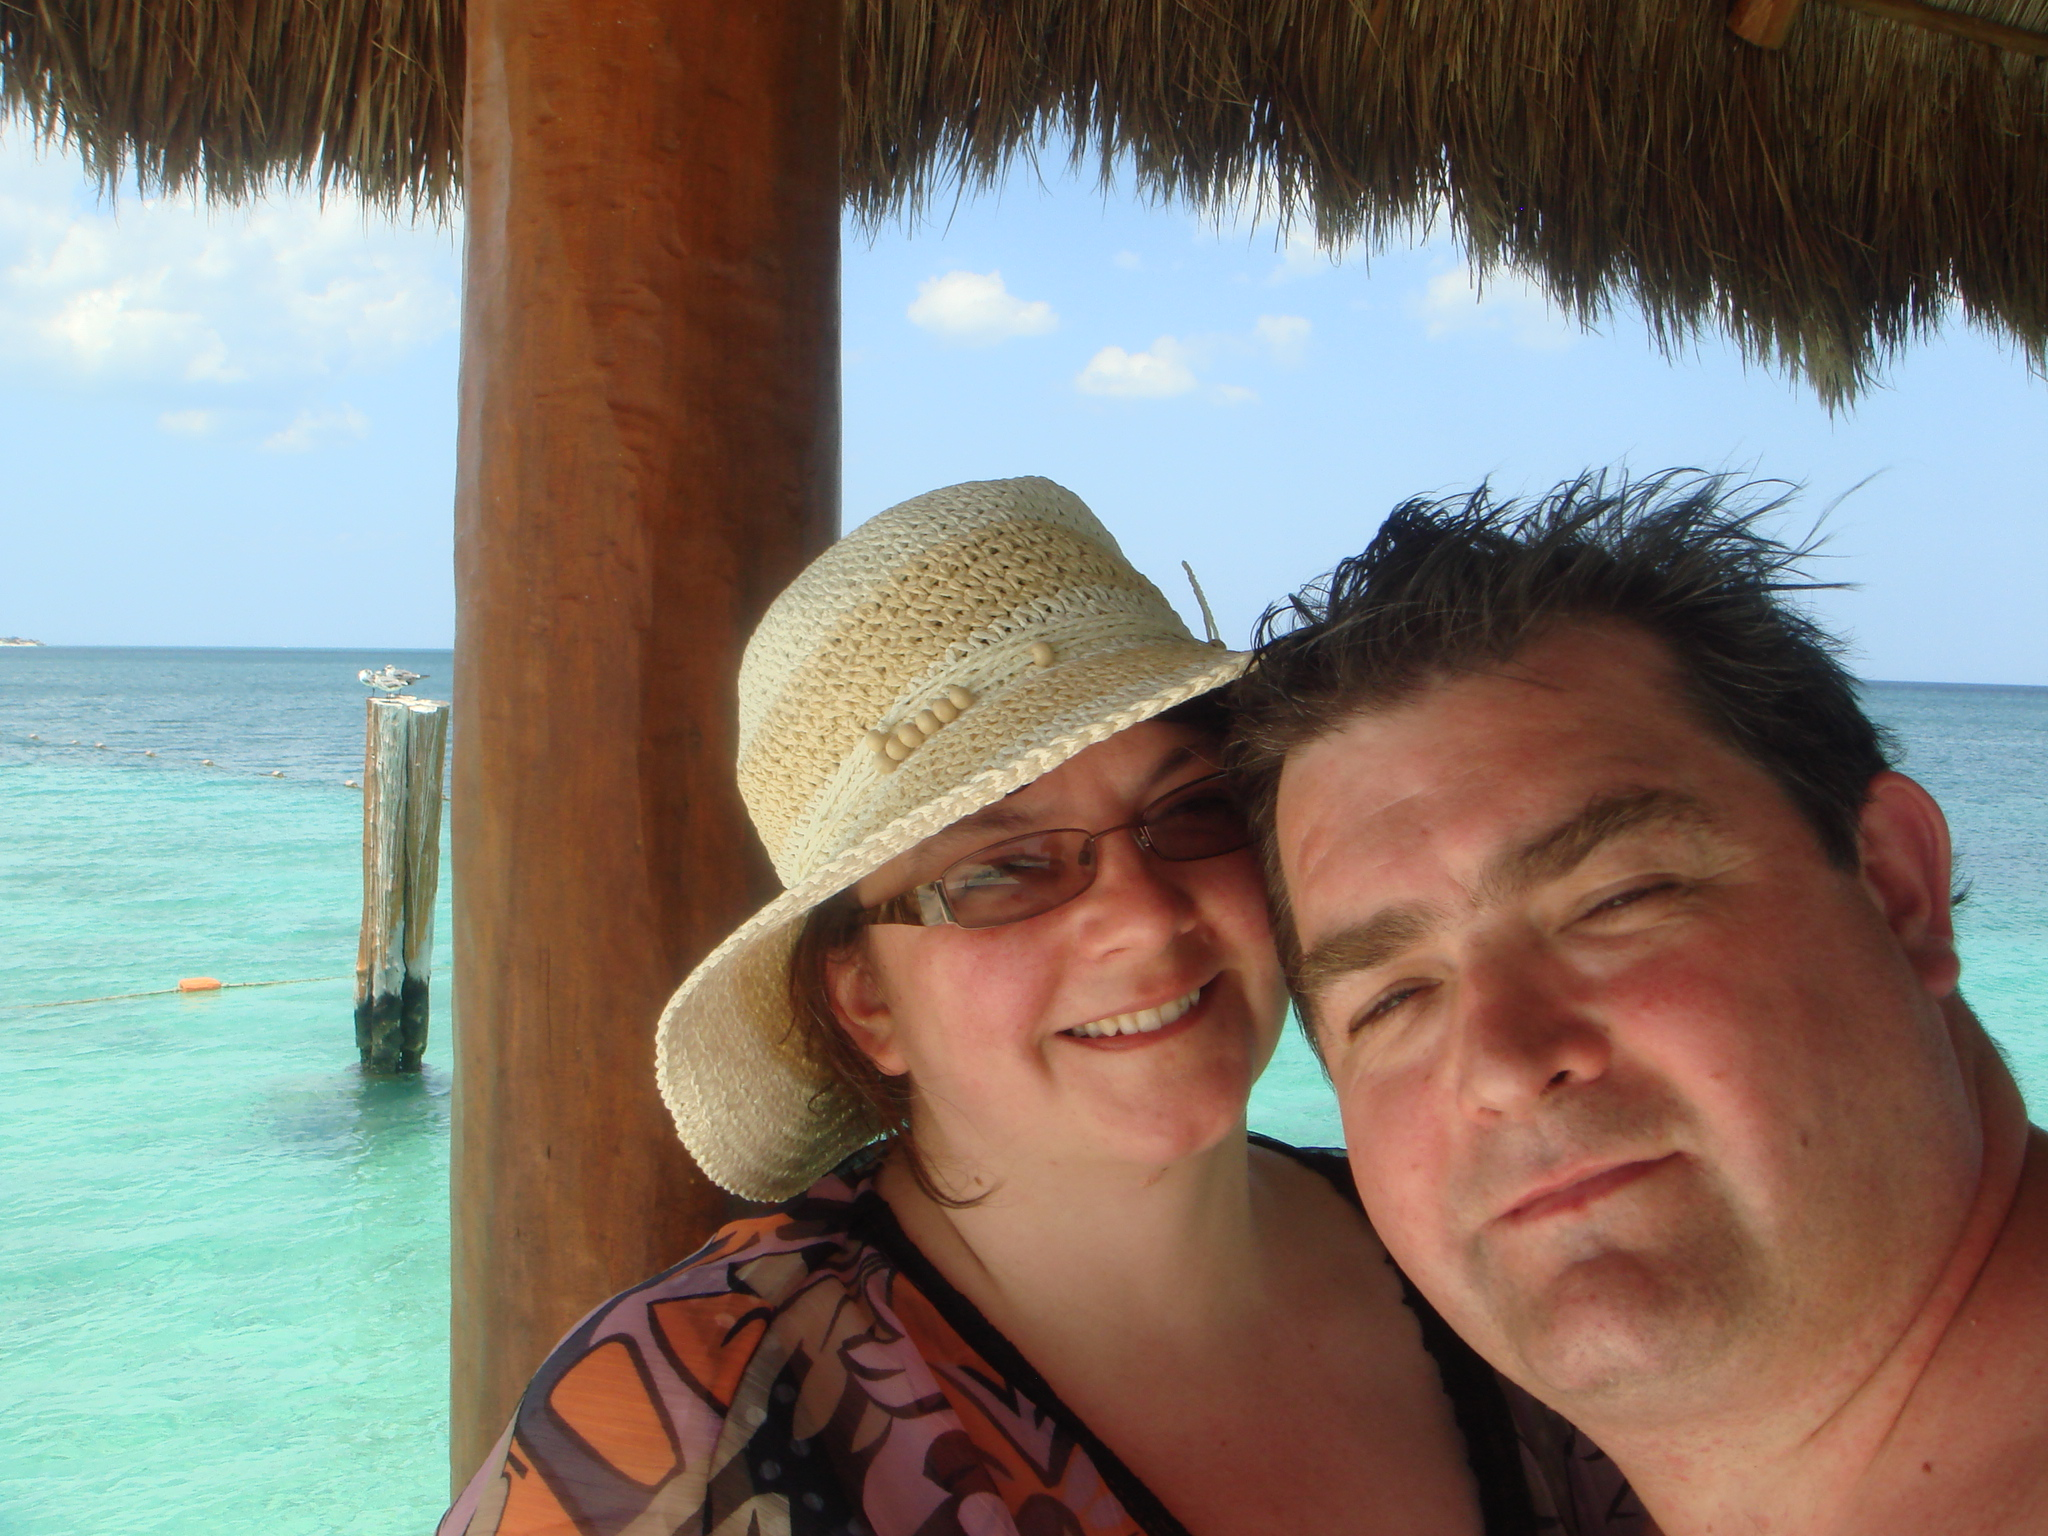 Travel blog: Denise Samples Two of Mexico's Finest Hotels for her 40th Birthday